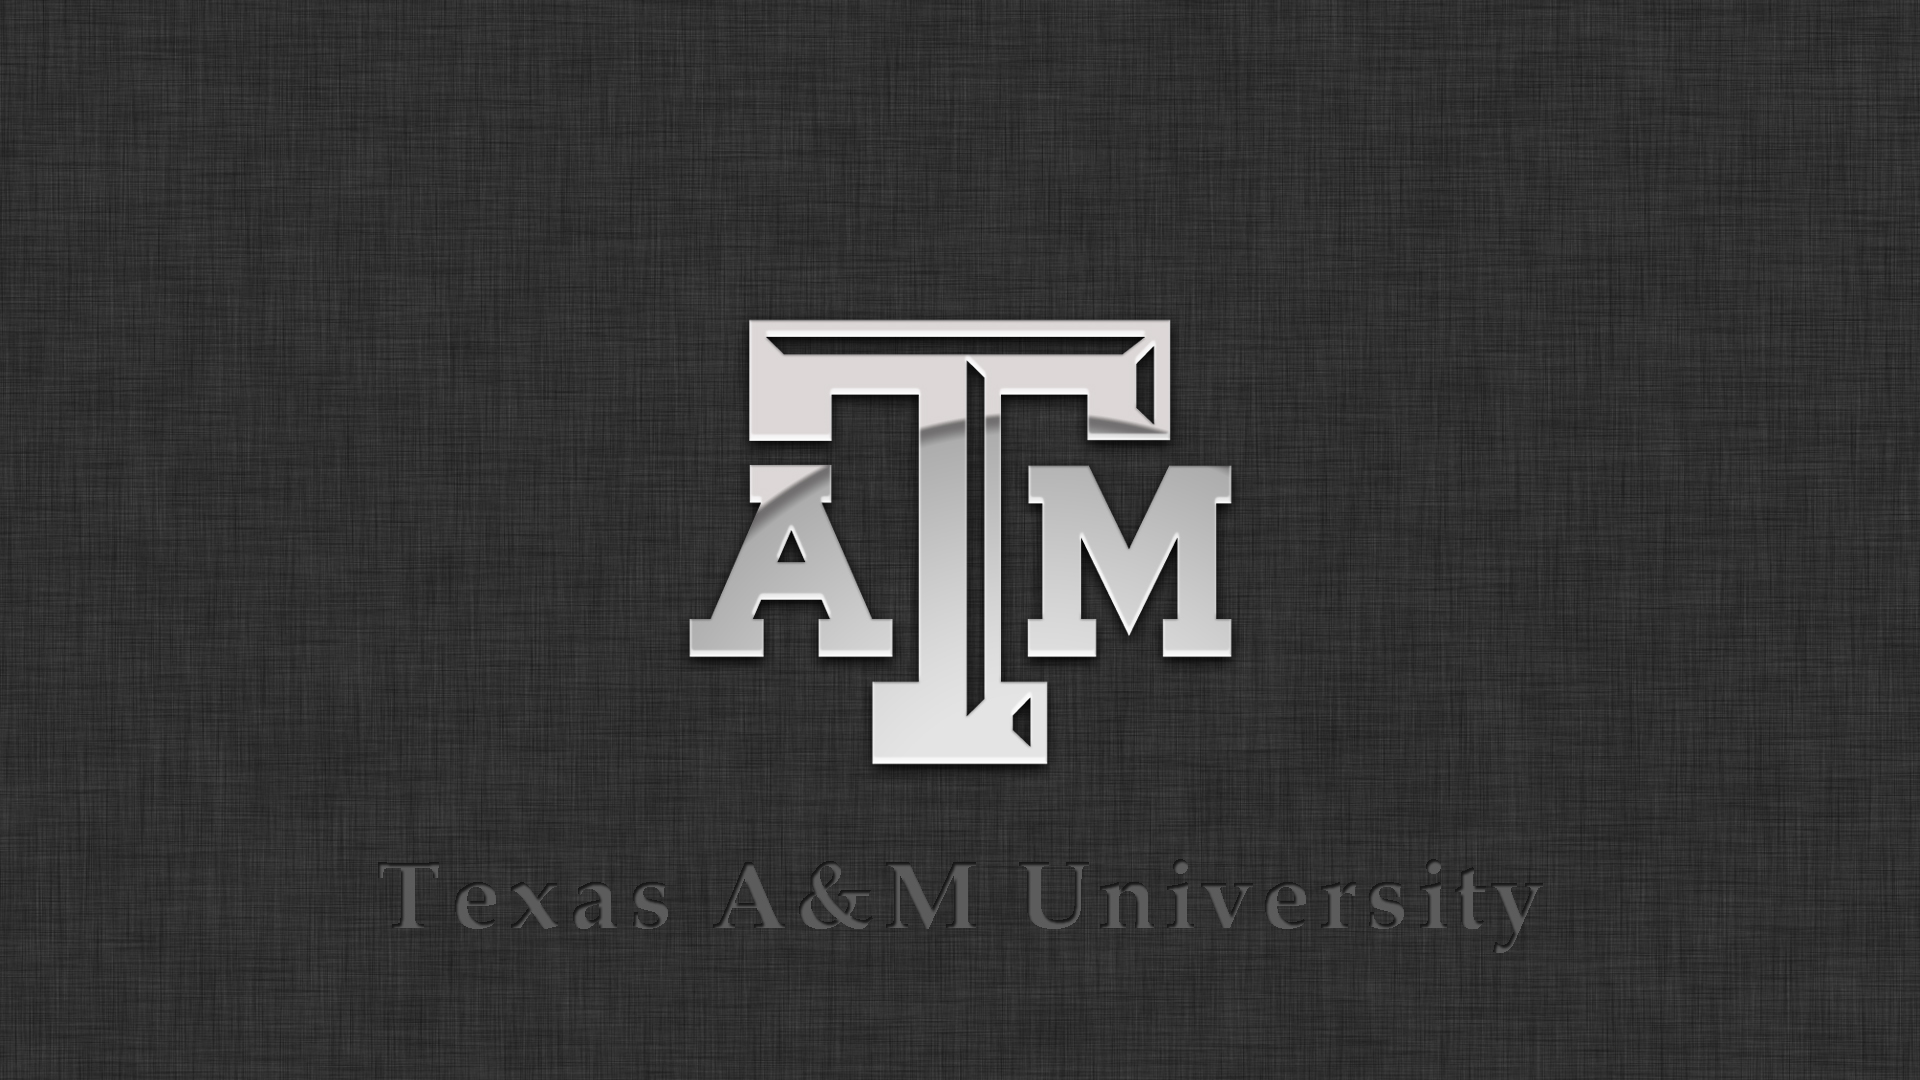 TAMU iOS Wallpaper by Chimmy92 1920x1080